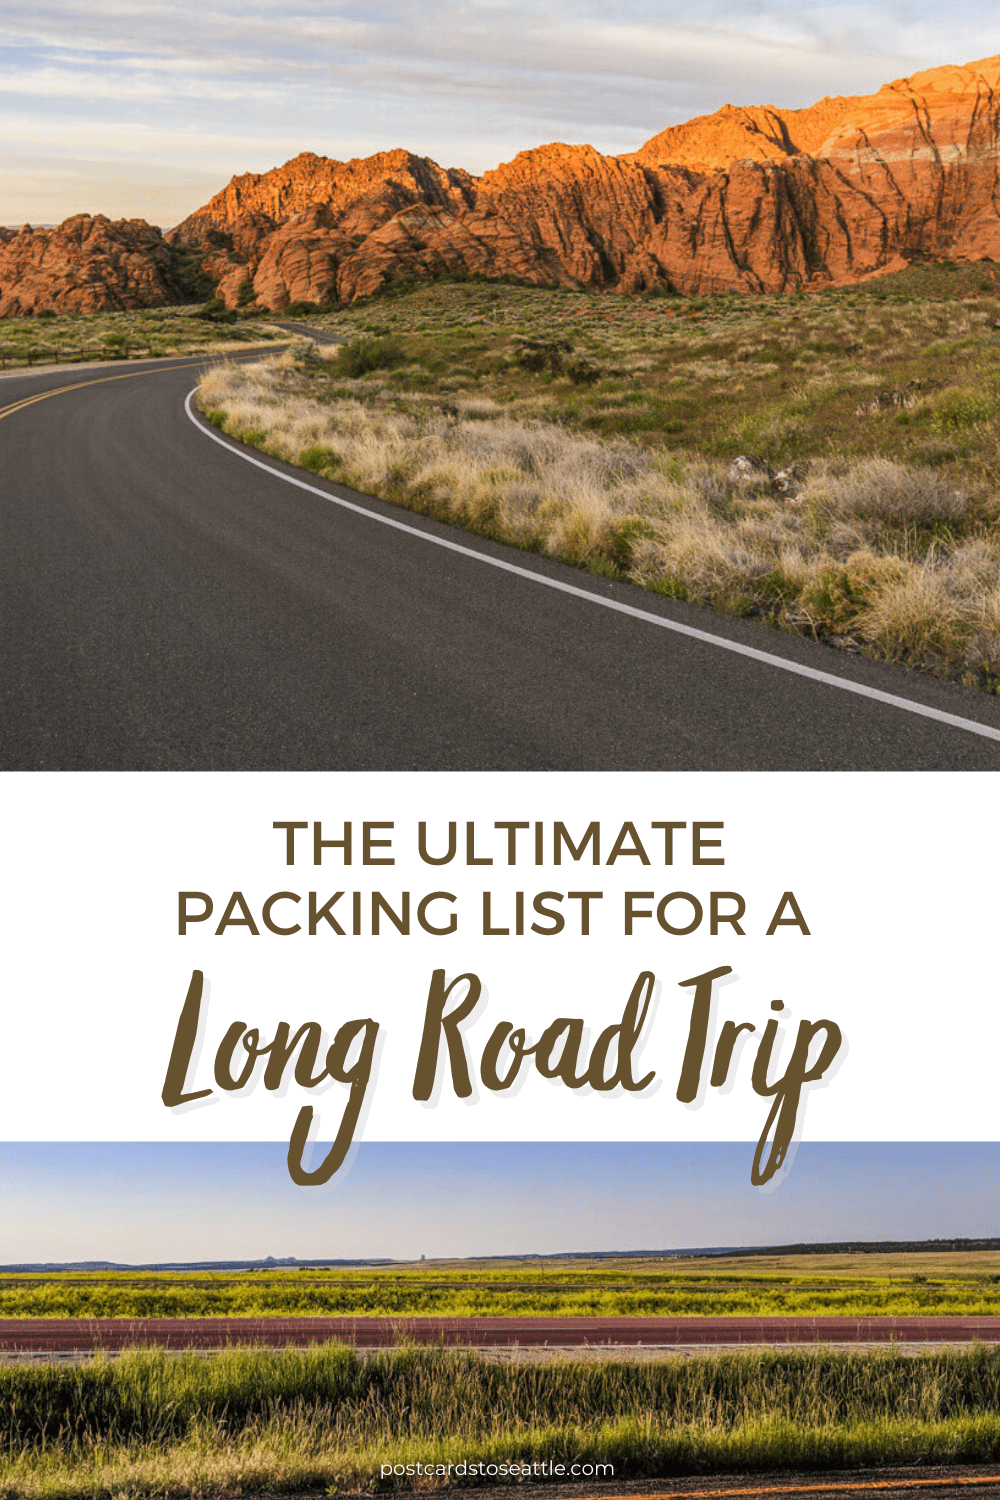 The Ultimate Packing List for a Road Trip